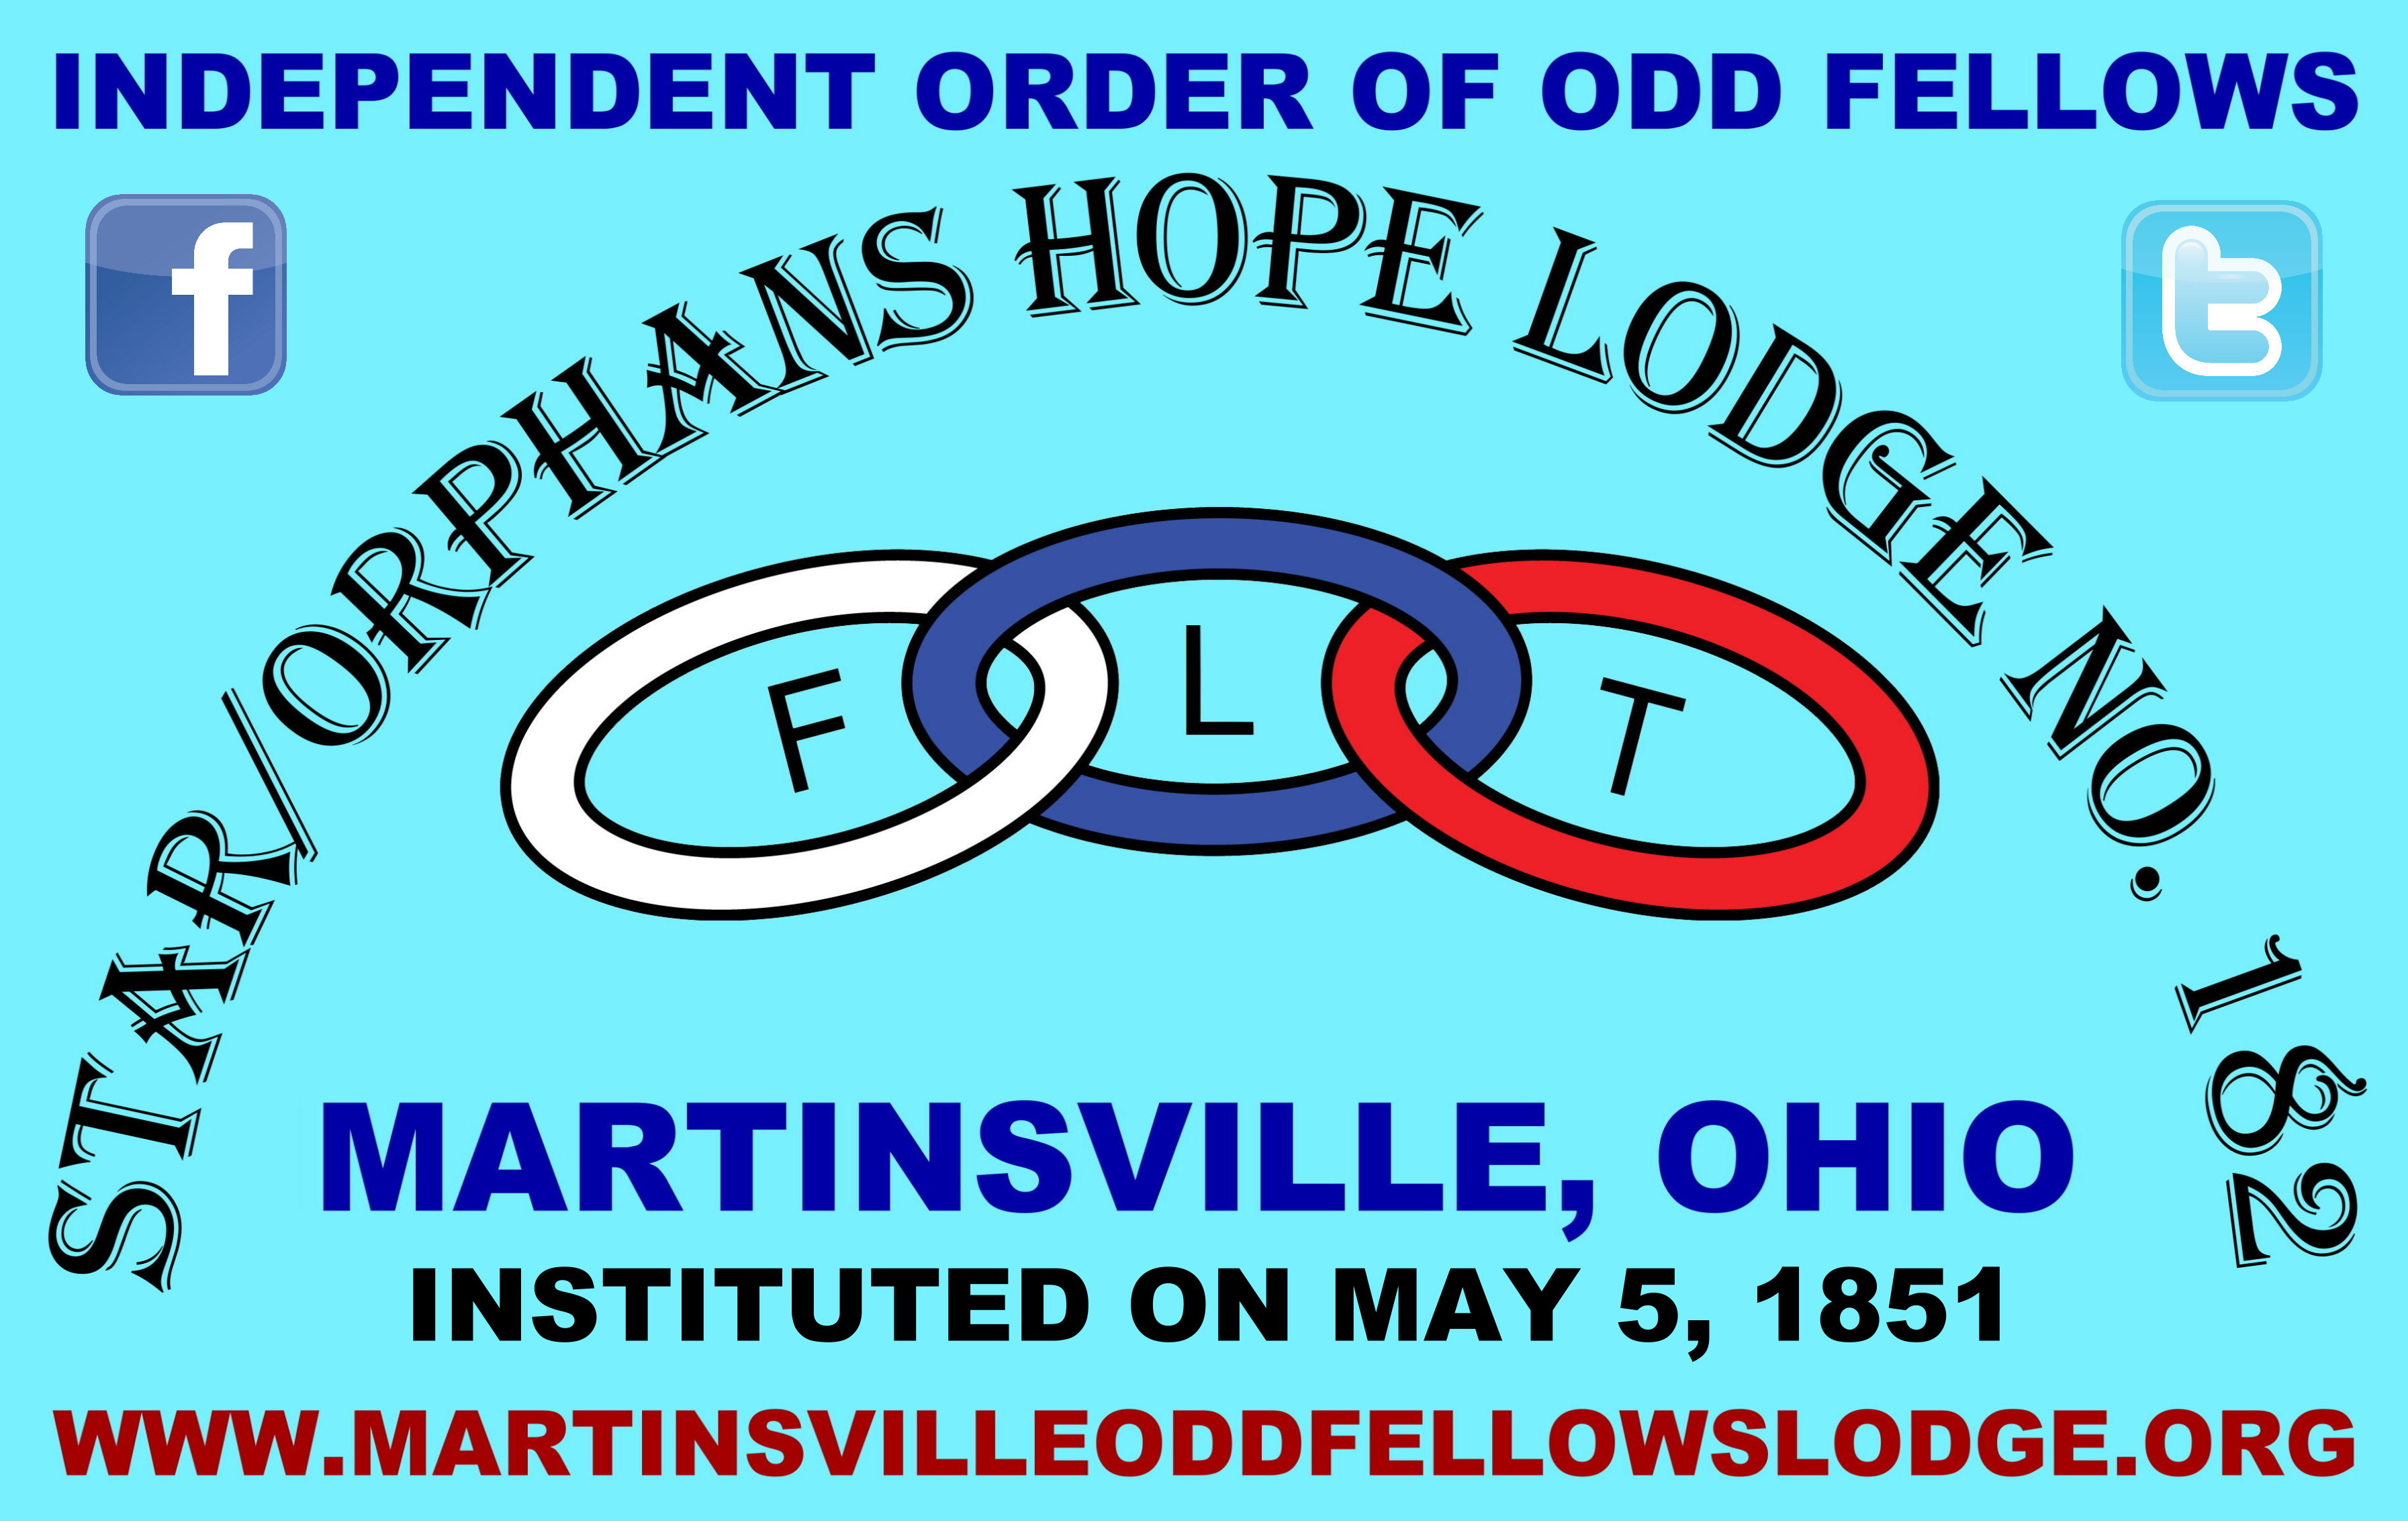 Star/Orphans Hope Lodge No. 182's Banner